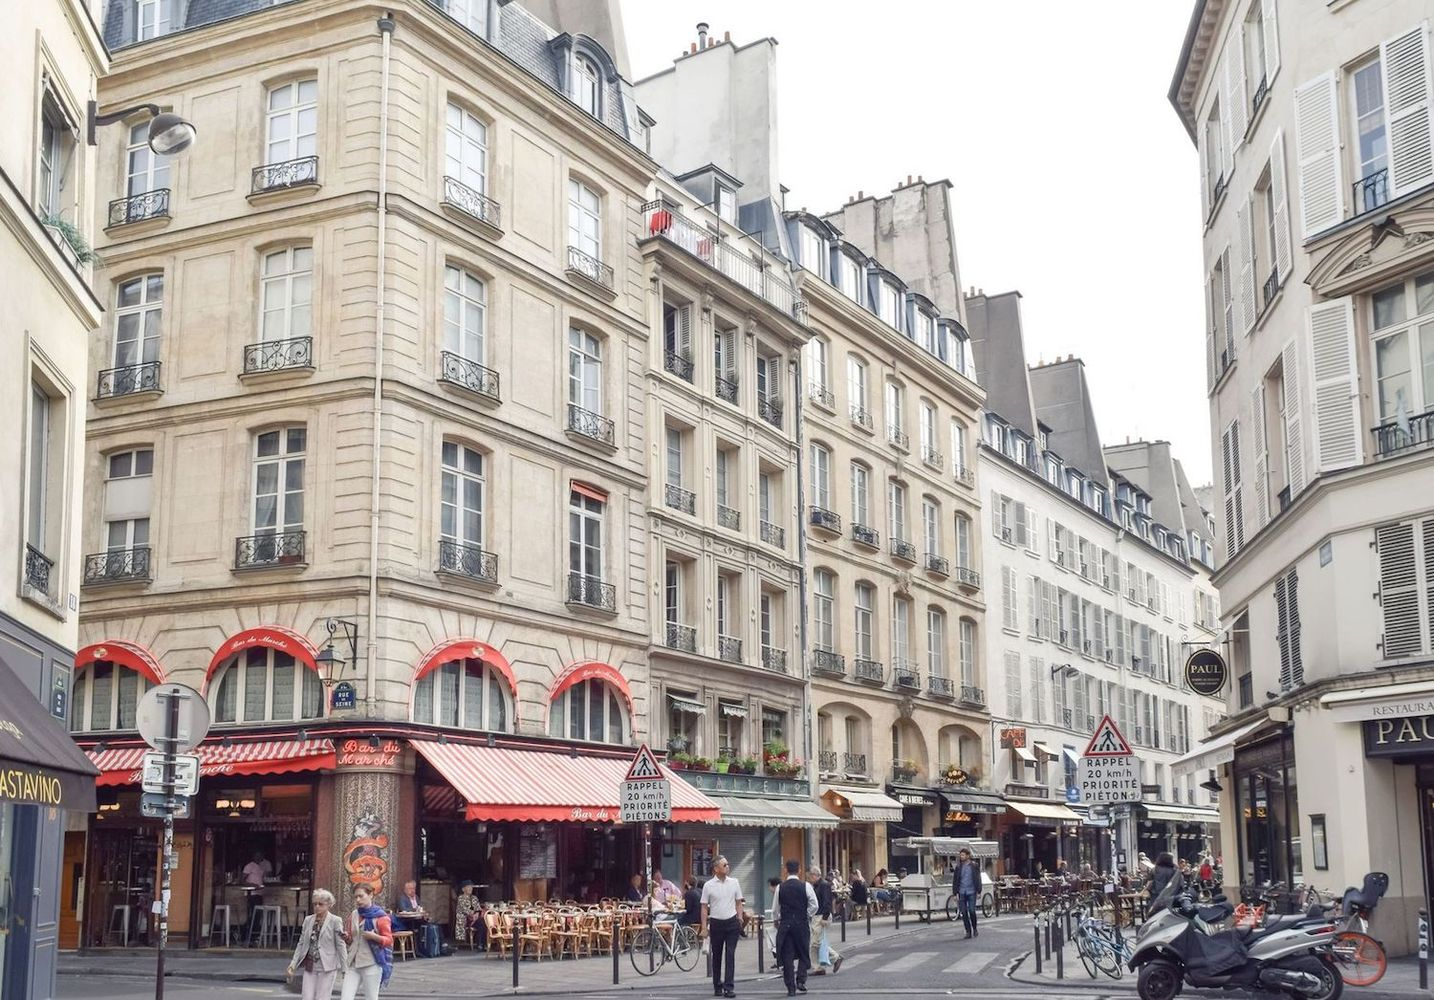 Bar du Marché, Travel Guide to Saint Germain, Paris